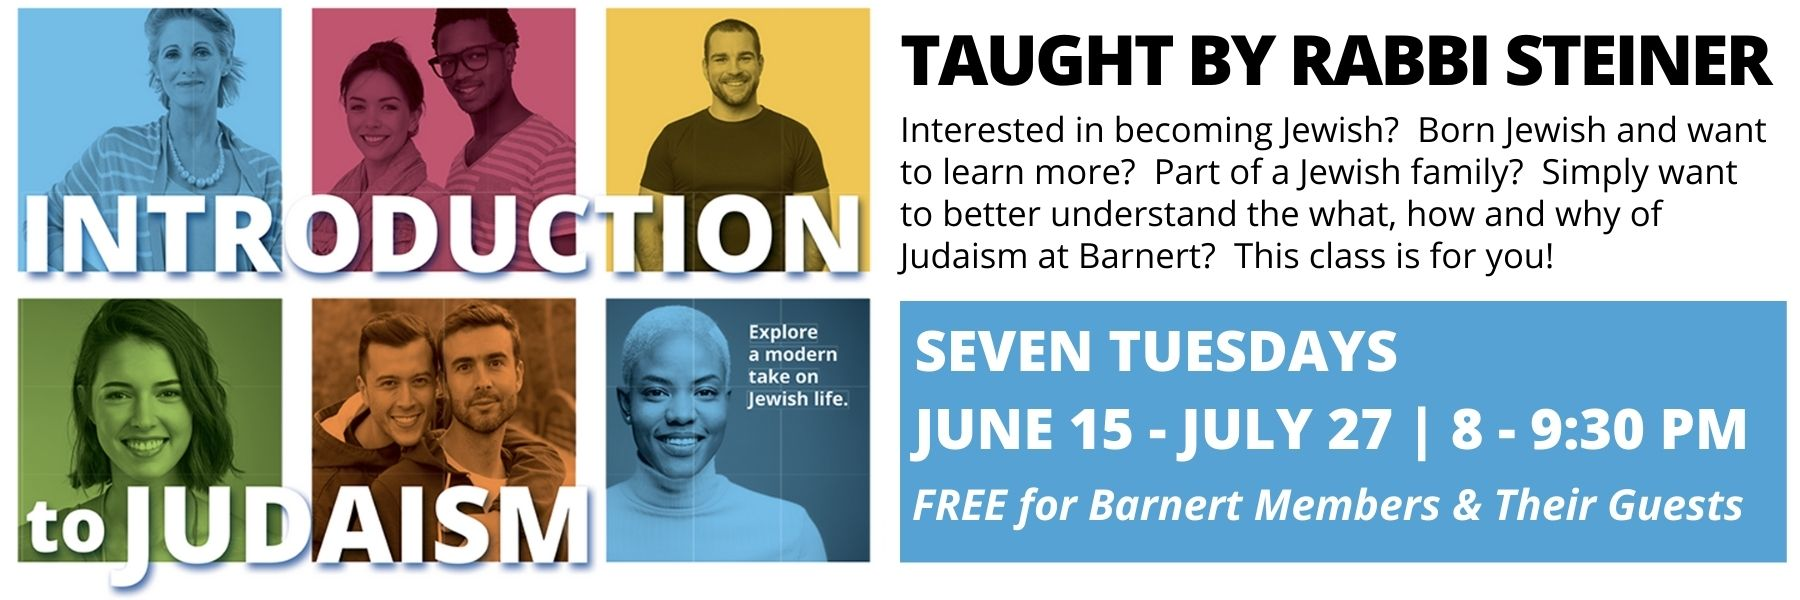 """<a href=""""https://www.barnerttemple.org/event/introtojudaism""""                                     target=""""_blank"""">                                                                 <span class=""""slider_title"""">                                     Next Class:  Tuesday, June 22, at 8 p.m.                                </span>                                                                 </a>                                                                                                                                                                                       <span class=""""slider_description"""">This is a wonderful opportunity to learn about the what, why, and how of Judaism at Barnert Temple.  Advance registration required.  Click above for details.</span>"""